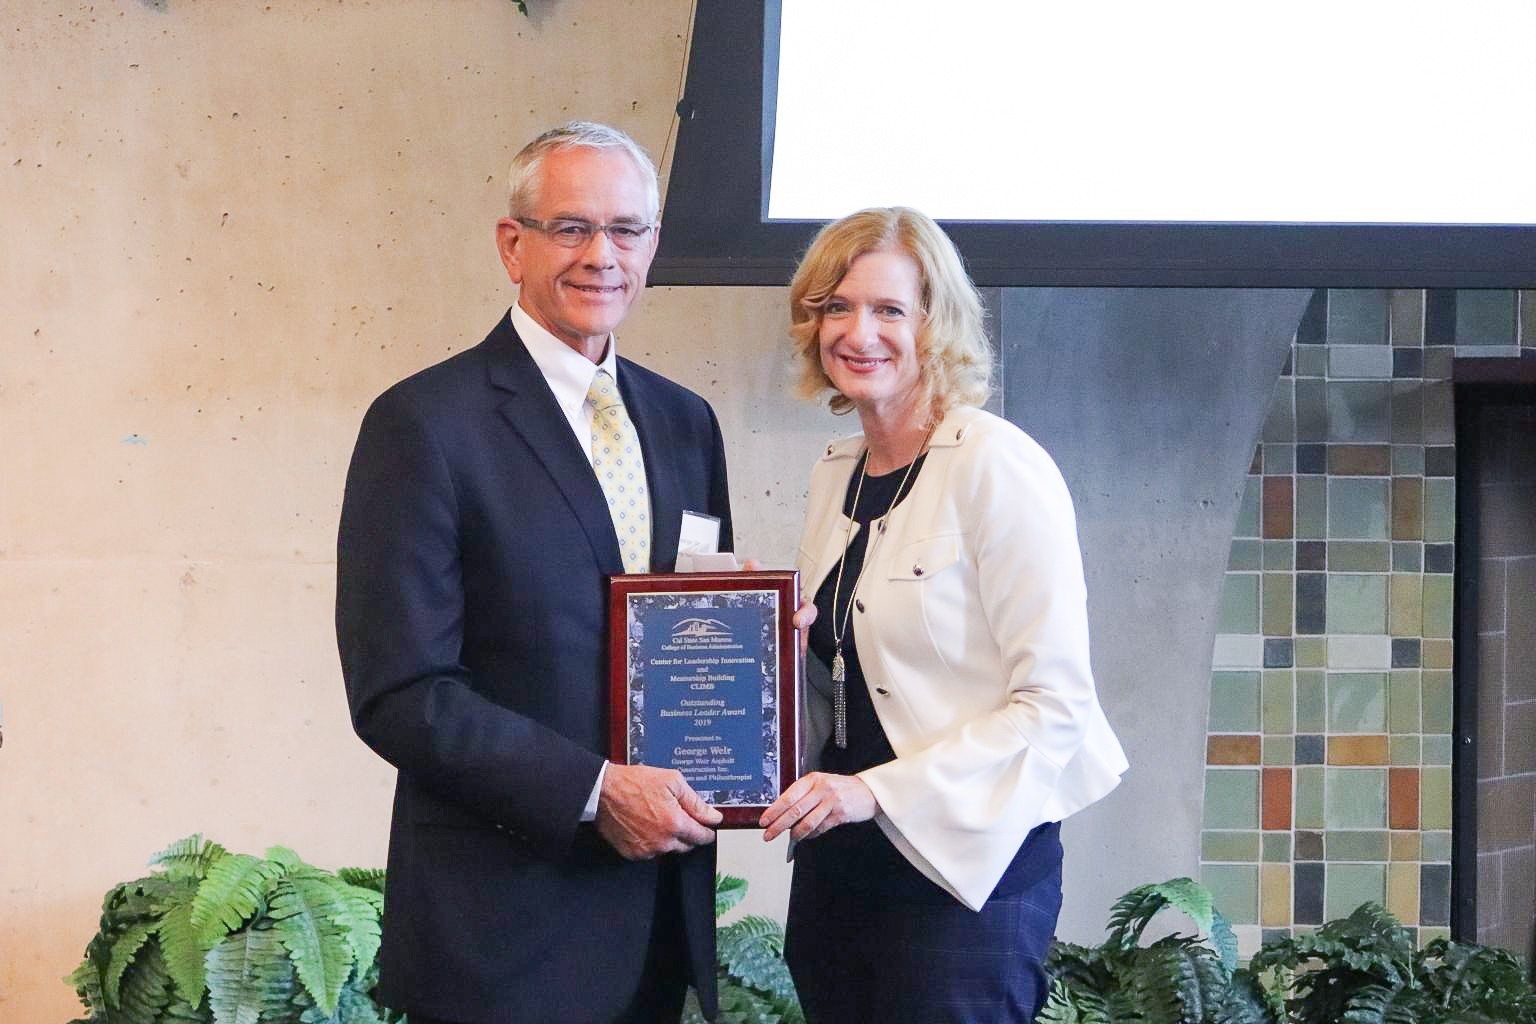 Escondido businessman George Weir receives the 2019 Outstanding Business Leader of the Year award from CSUSM President Ellen Neufeldt.